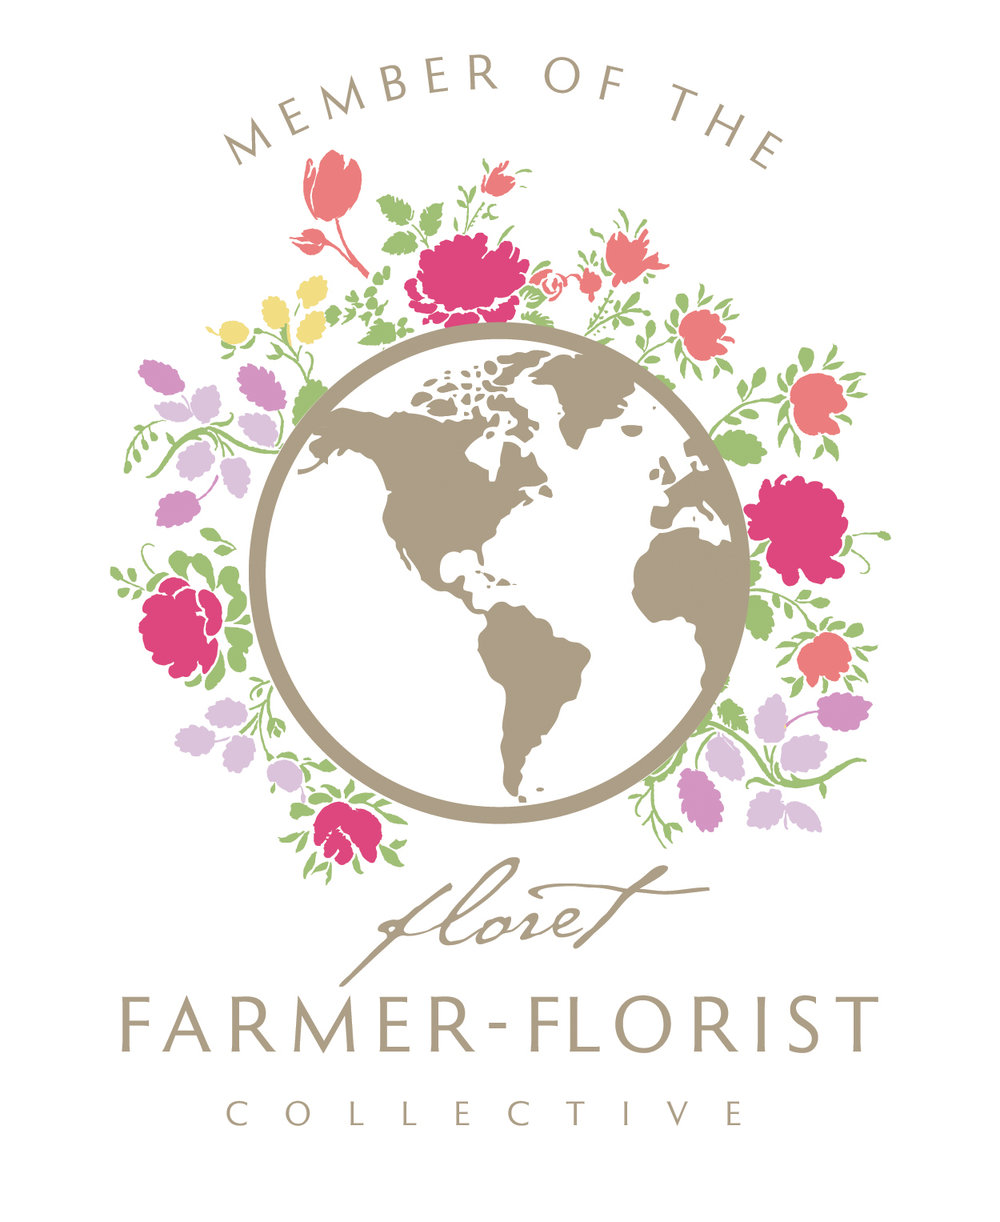 WE ARE A PROUD MEMBER OF THEFLORET FLOWERS COLLECTIVE - Established in 2008, the Floret Flowers Collective is a flower movement and an inclusive global directory committed to growing, buying and promoting local flowers. Although separated by many miles, we are kindred spirits united in a love of local, seasonal flowers. Every member of the Collective has pledged to highlight local, seasonal flowers and use sustainable growing and business practices whenever possible. We encourage you to connect with and support these committed, passionate artisans in your community.